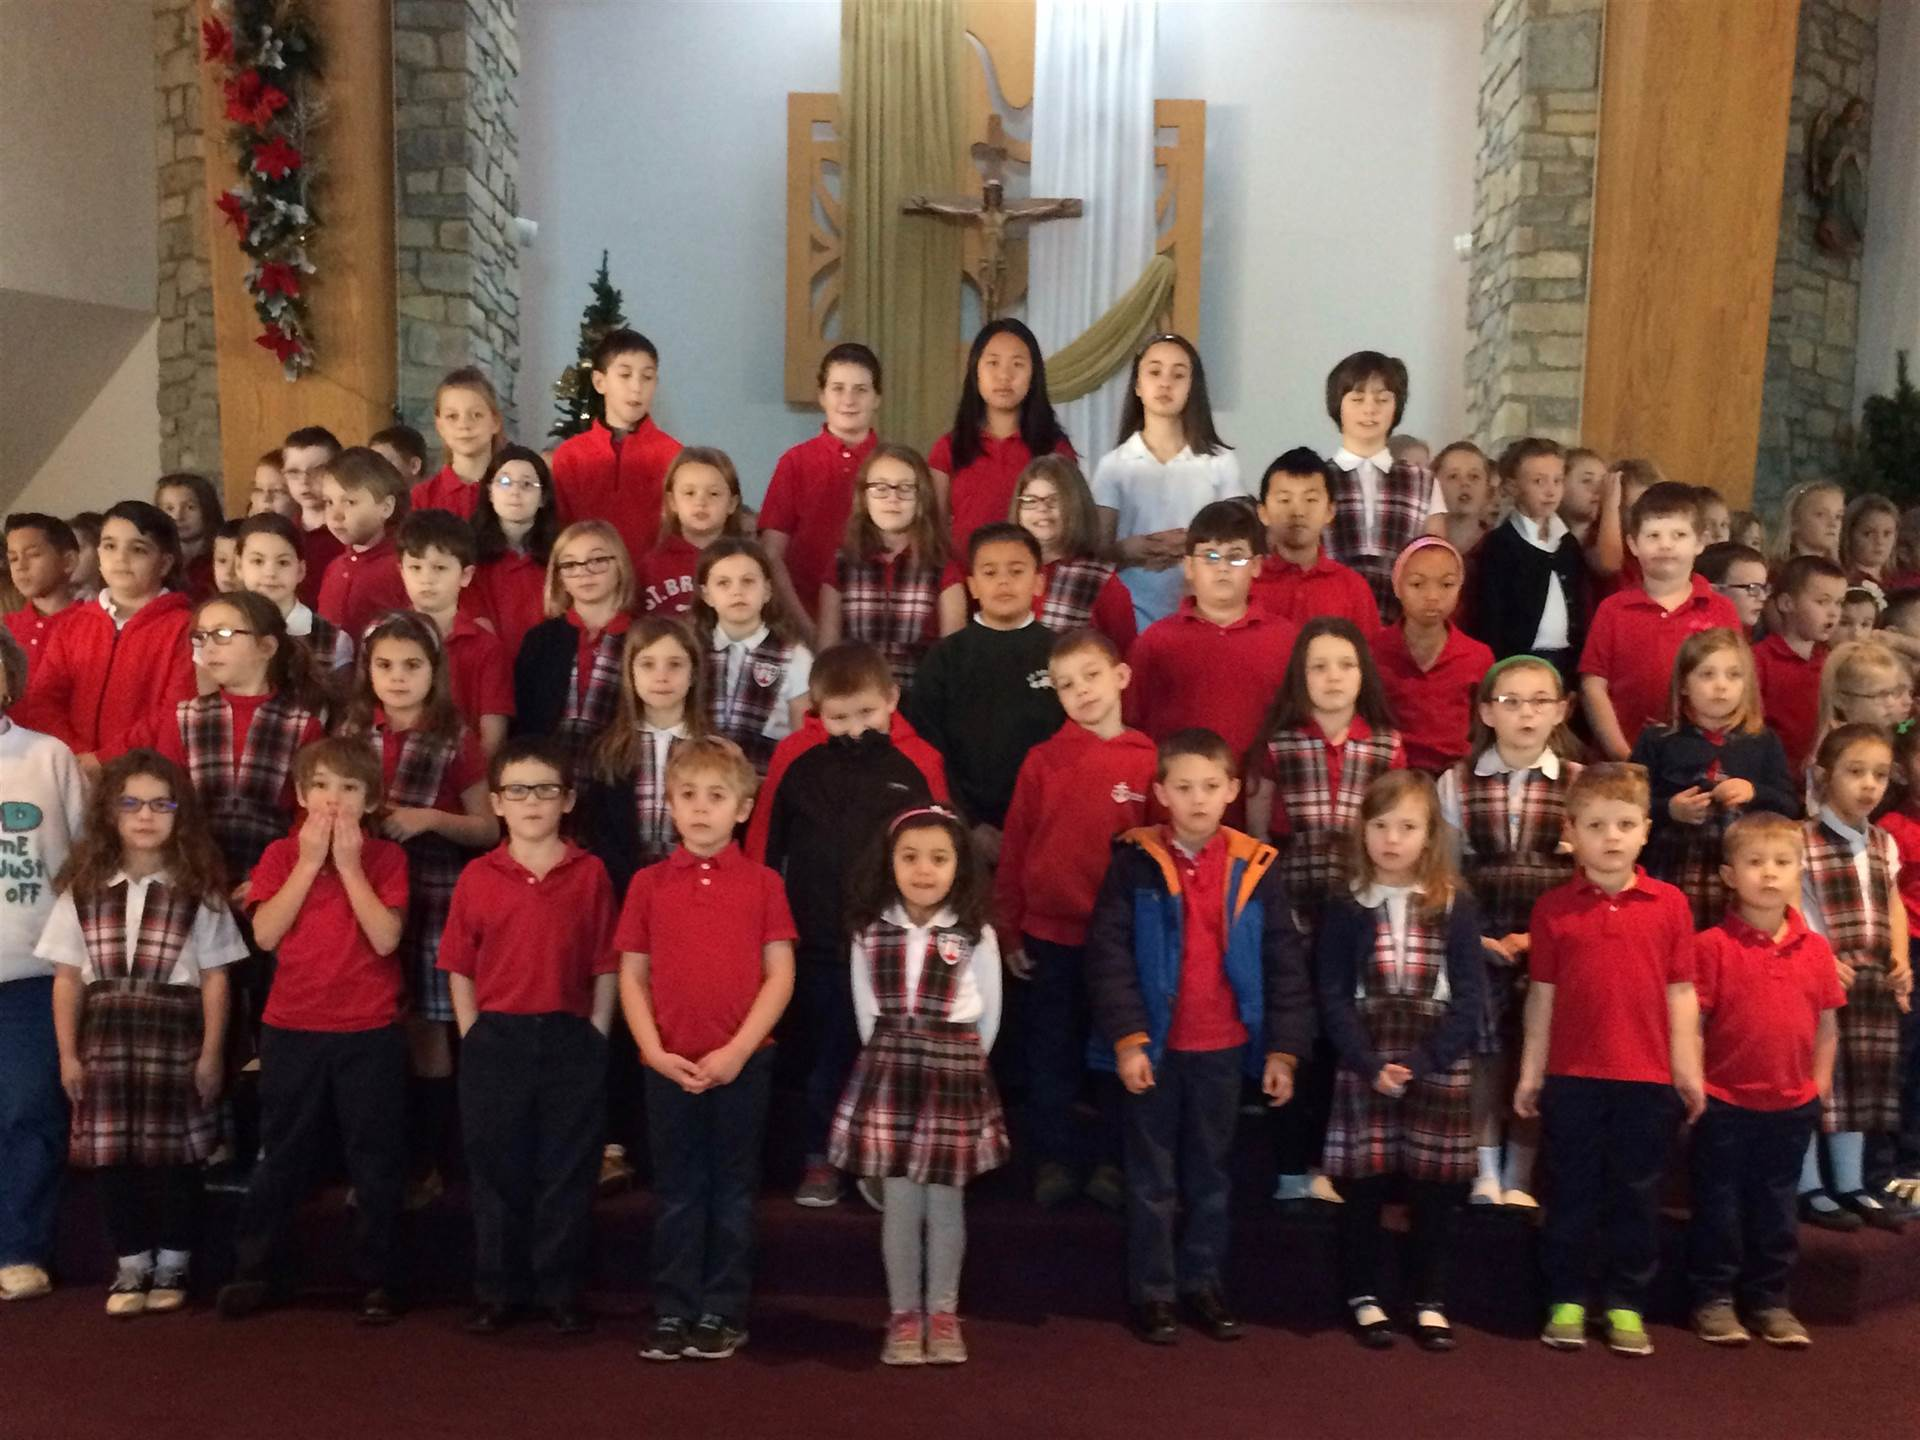 Students practice for the annual Christmas Program